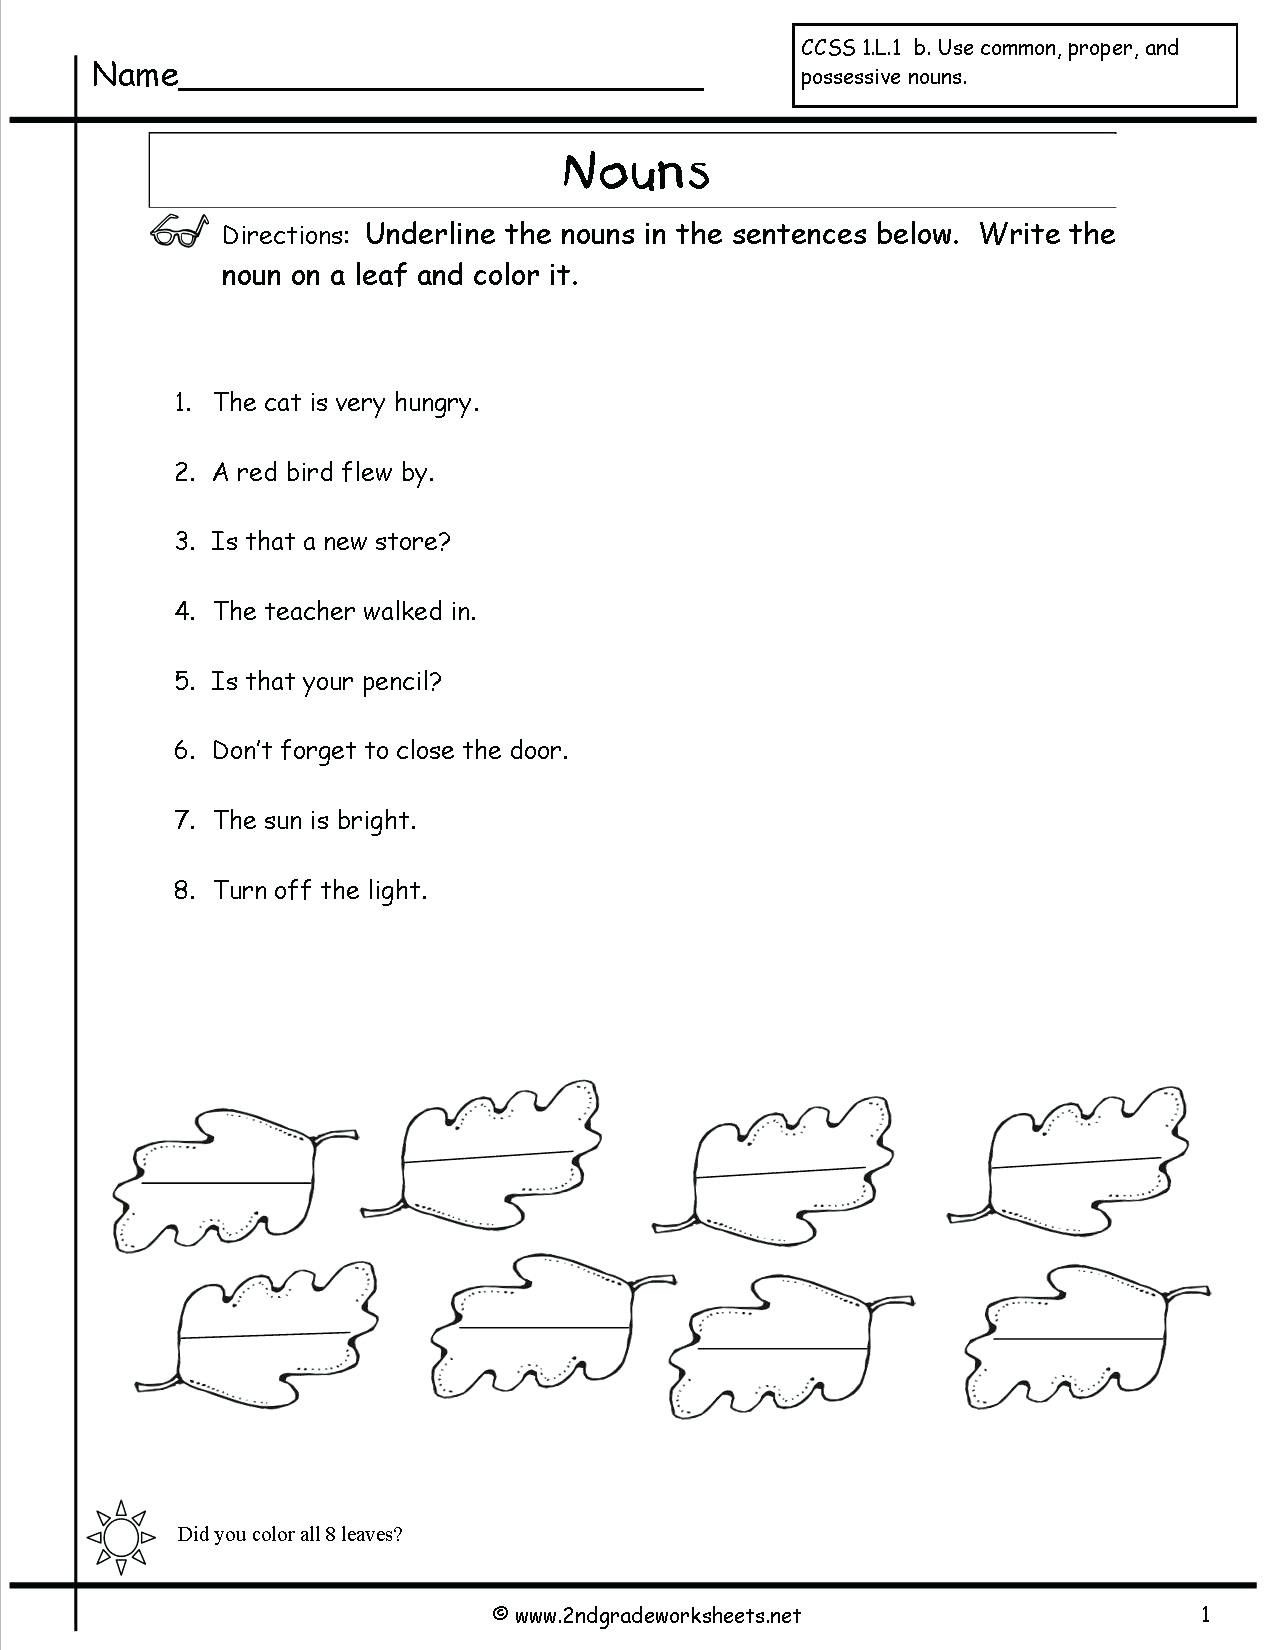 Second Grade Pronouns Worksheet In